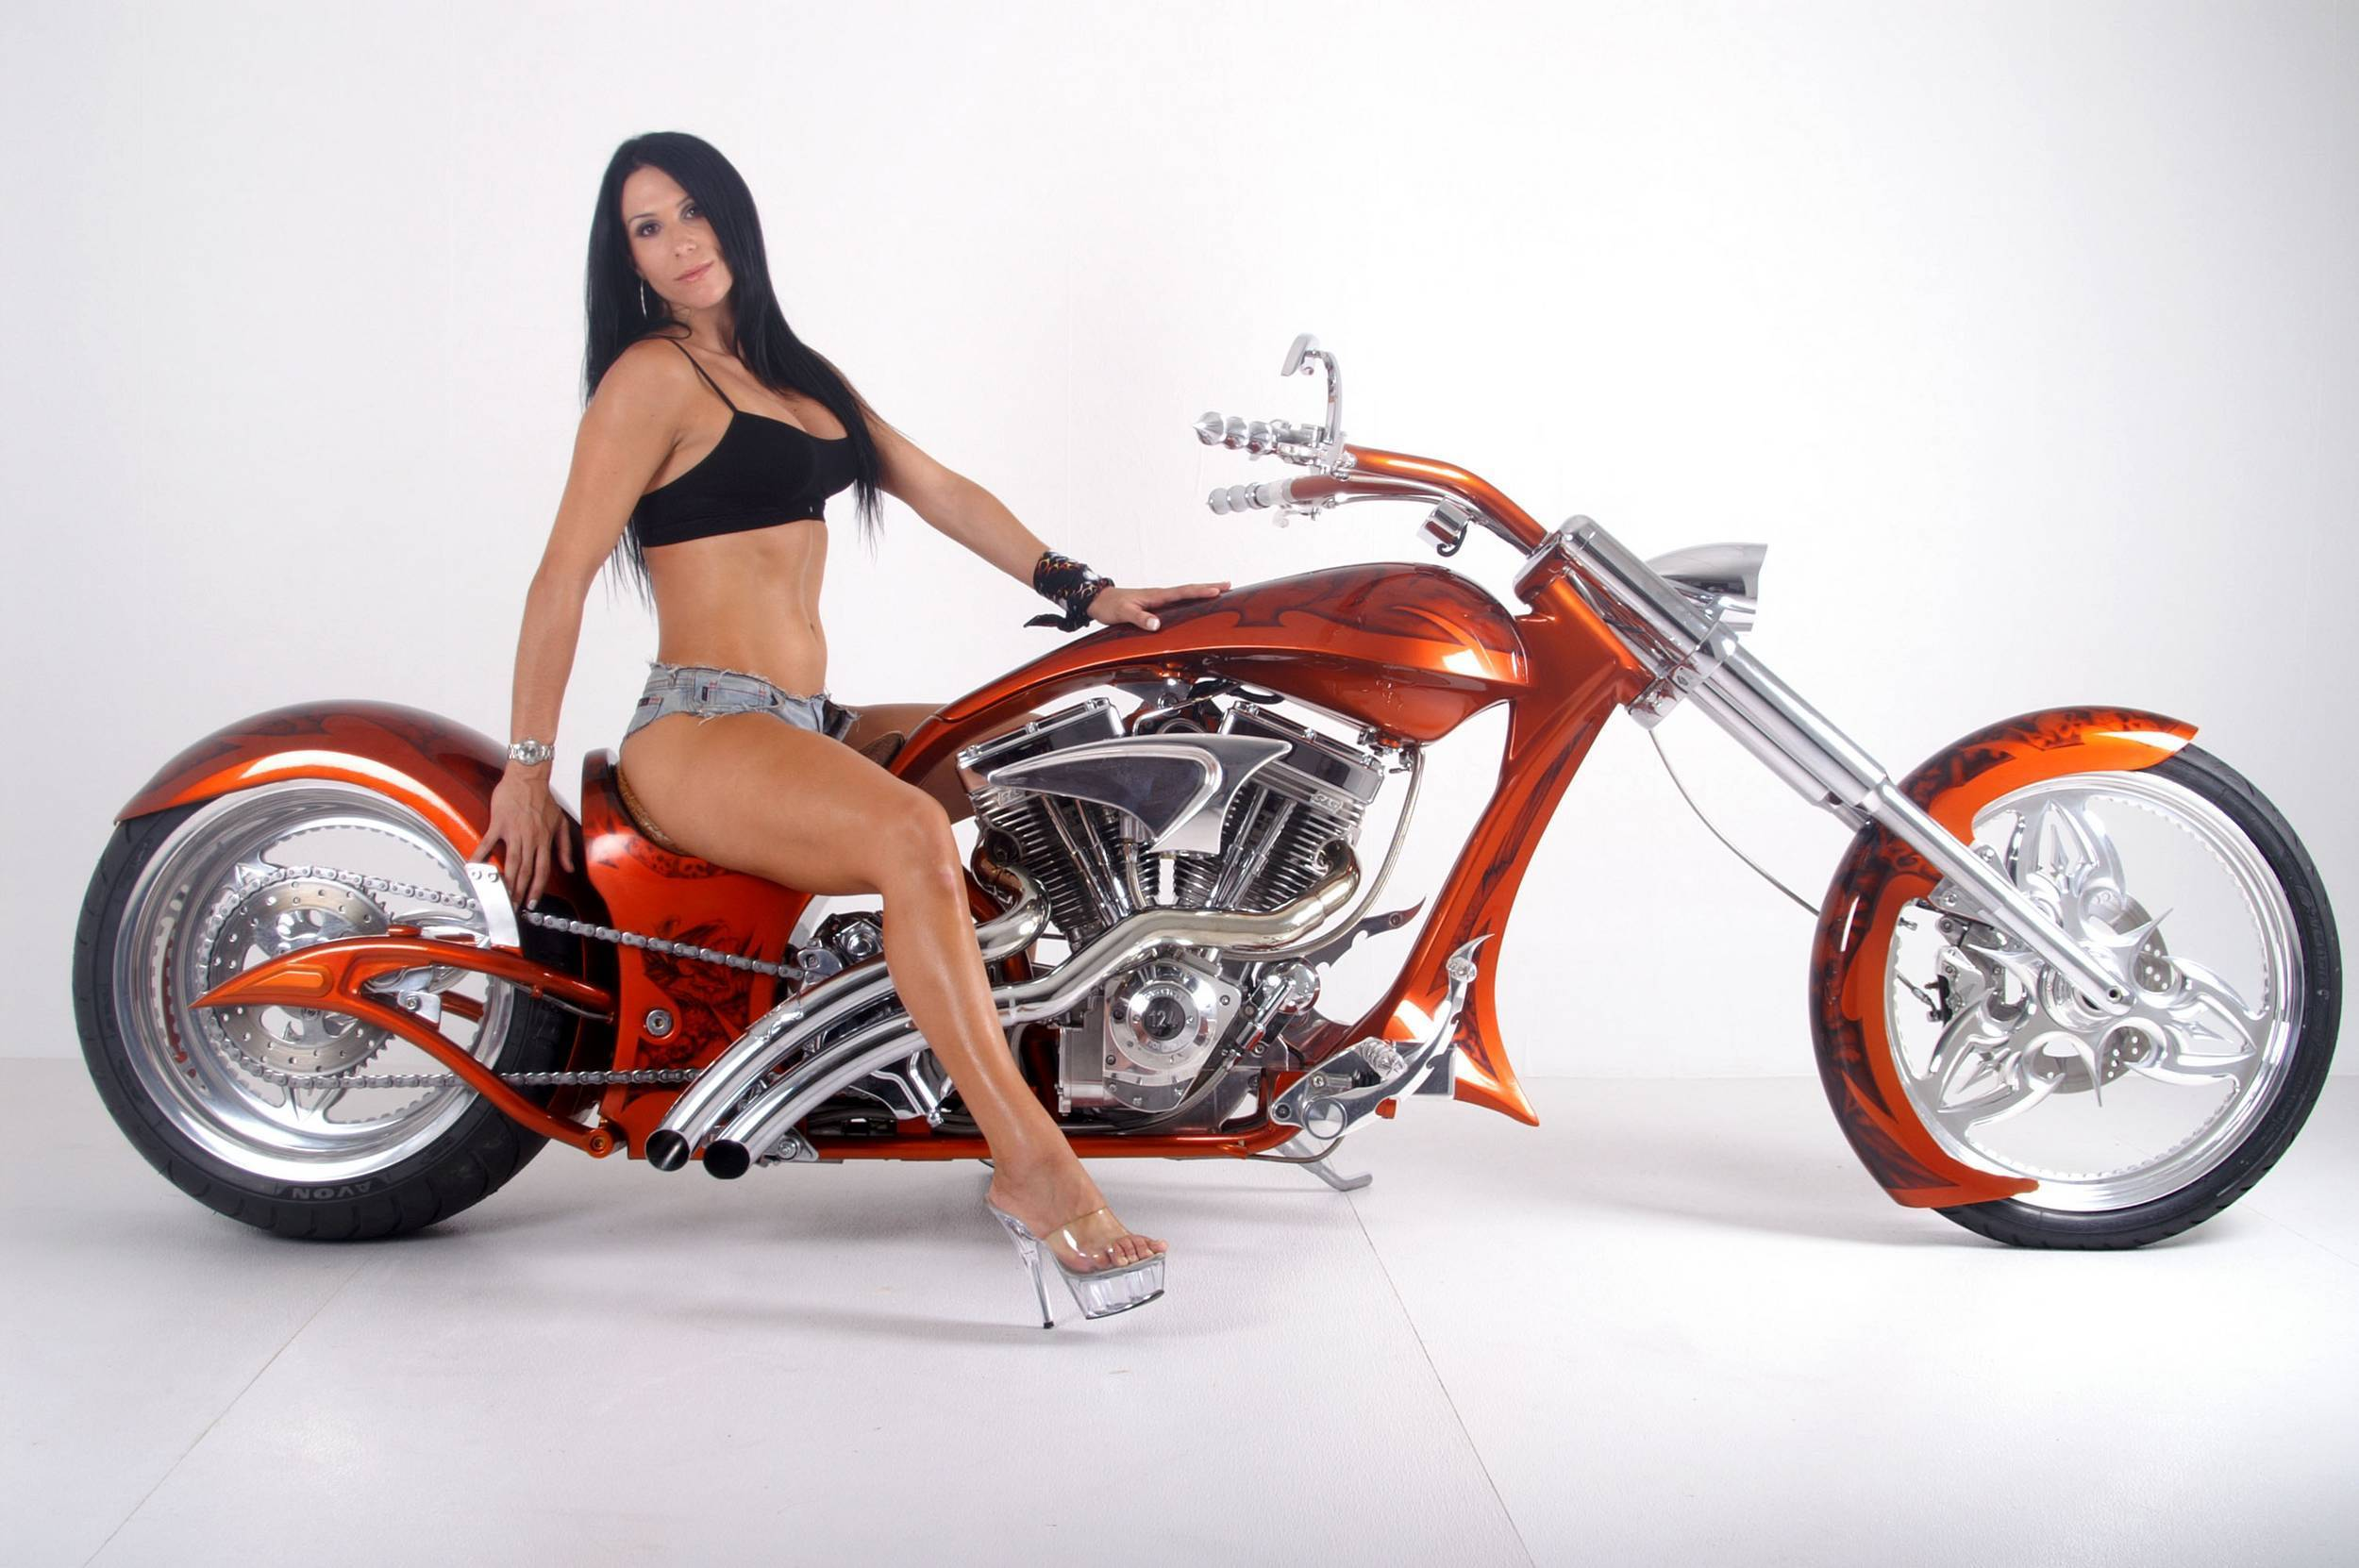 Custom Graphics For Motorcycles   Custom Motorcycles